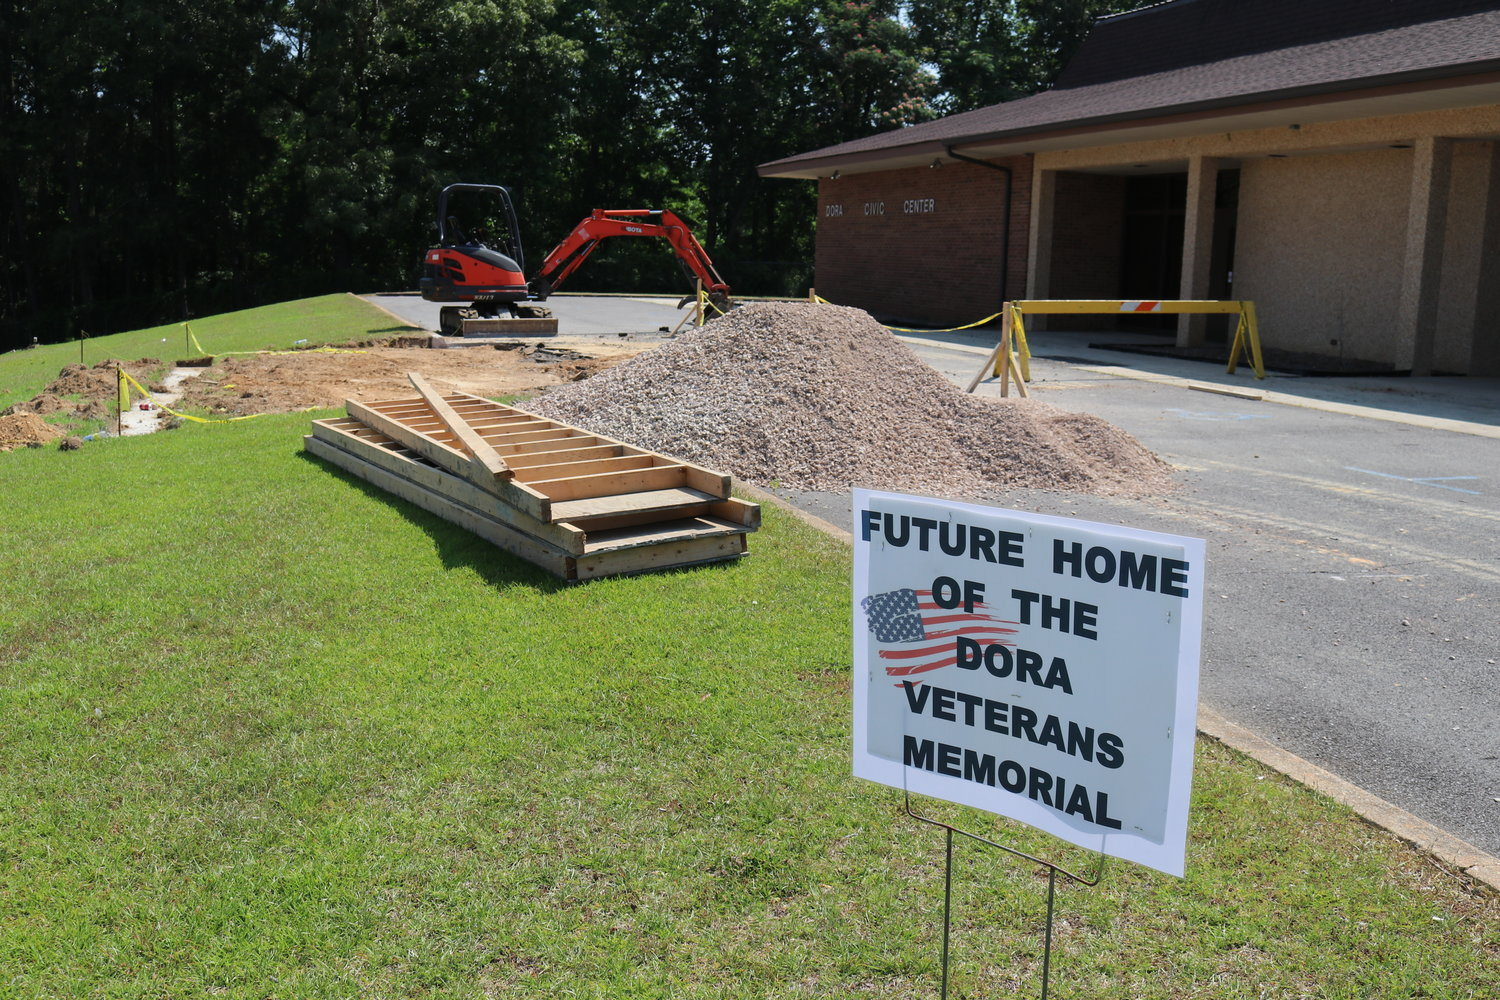 Contractors for the Dora Veterans Memorial Committee broke ground on the monument area this past week.  The goal is to have the memorial completed by Veterans Day 2019.